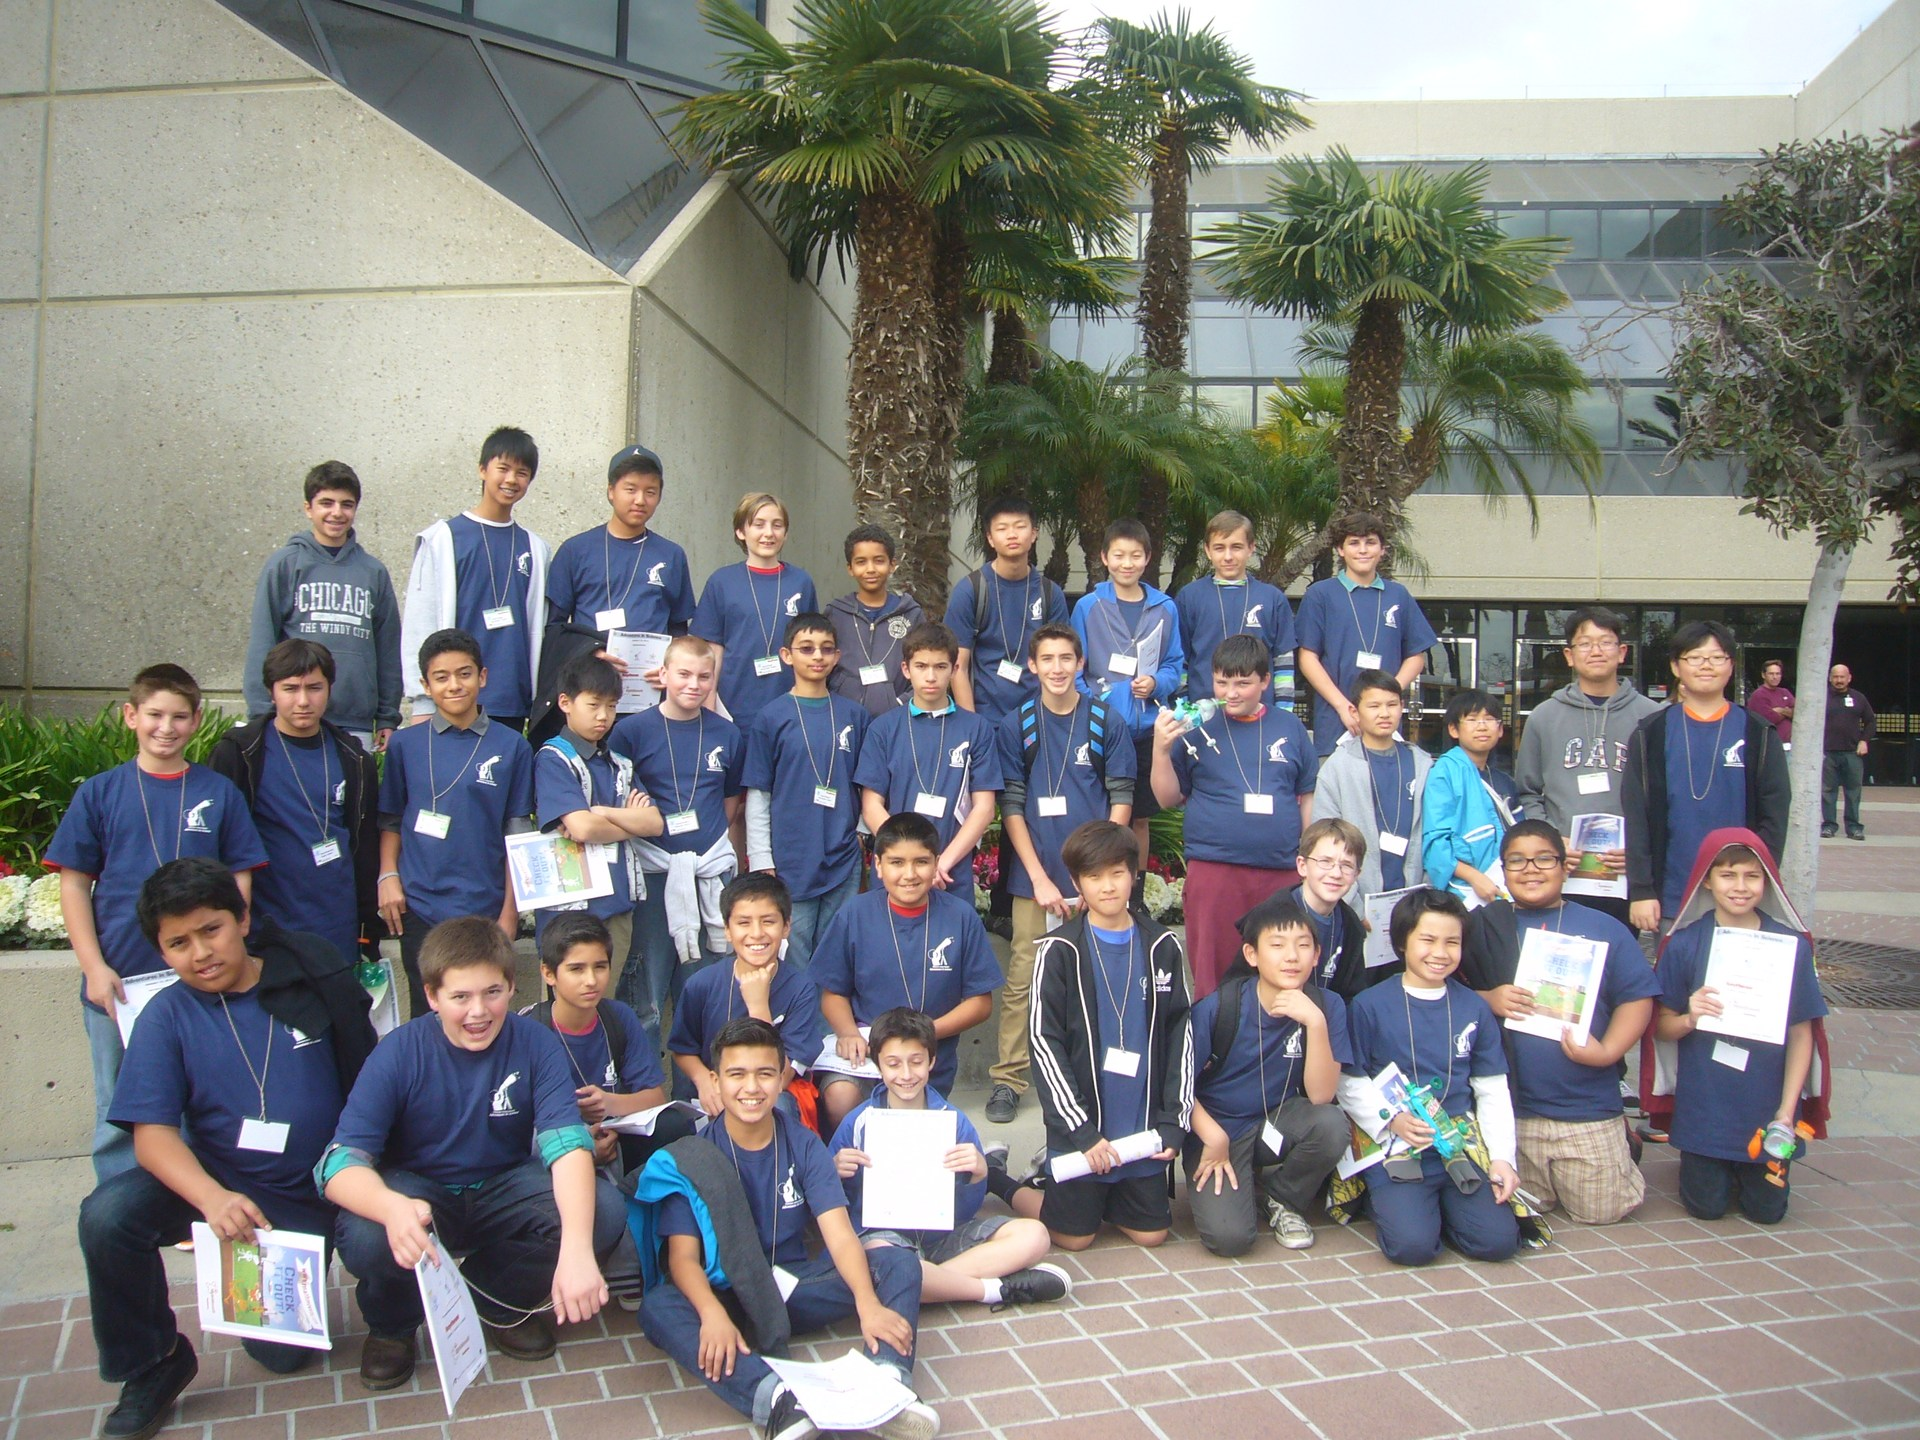 Adventures in STEM for Boys Group Photo